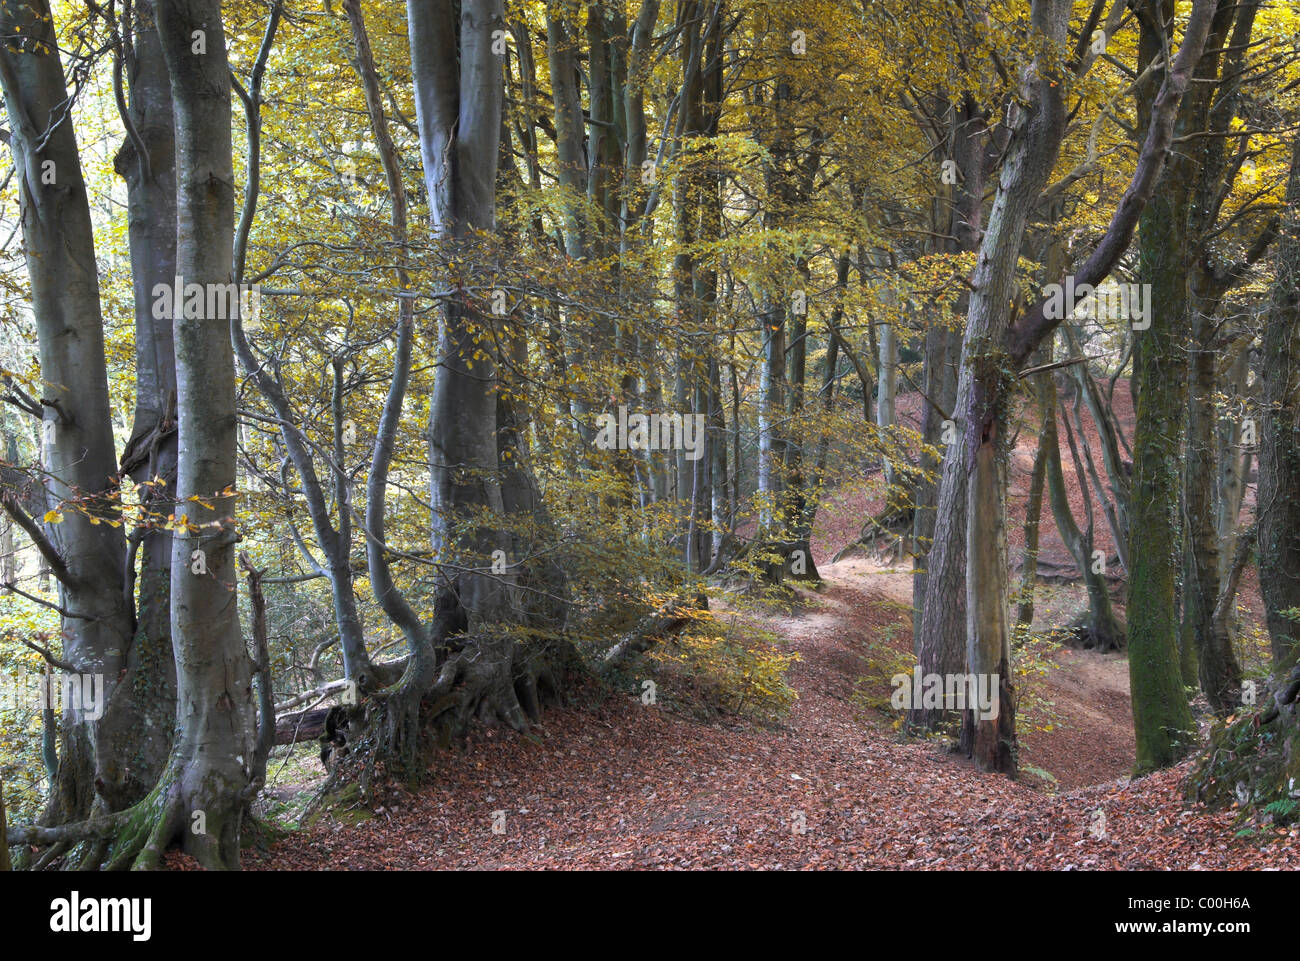 Core Hill Wood with beech trees in Autumn foliage, near Sidmouth, Devon, UK November 2007 - Stock Image